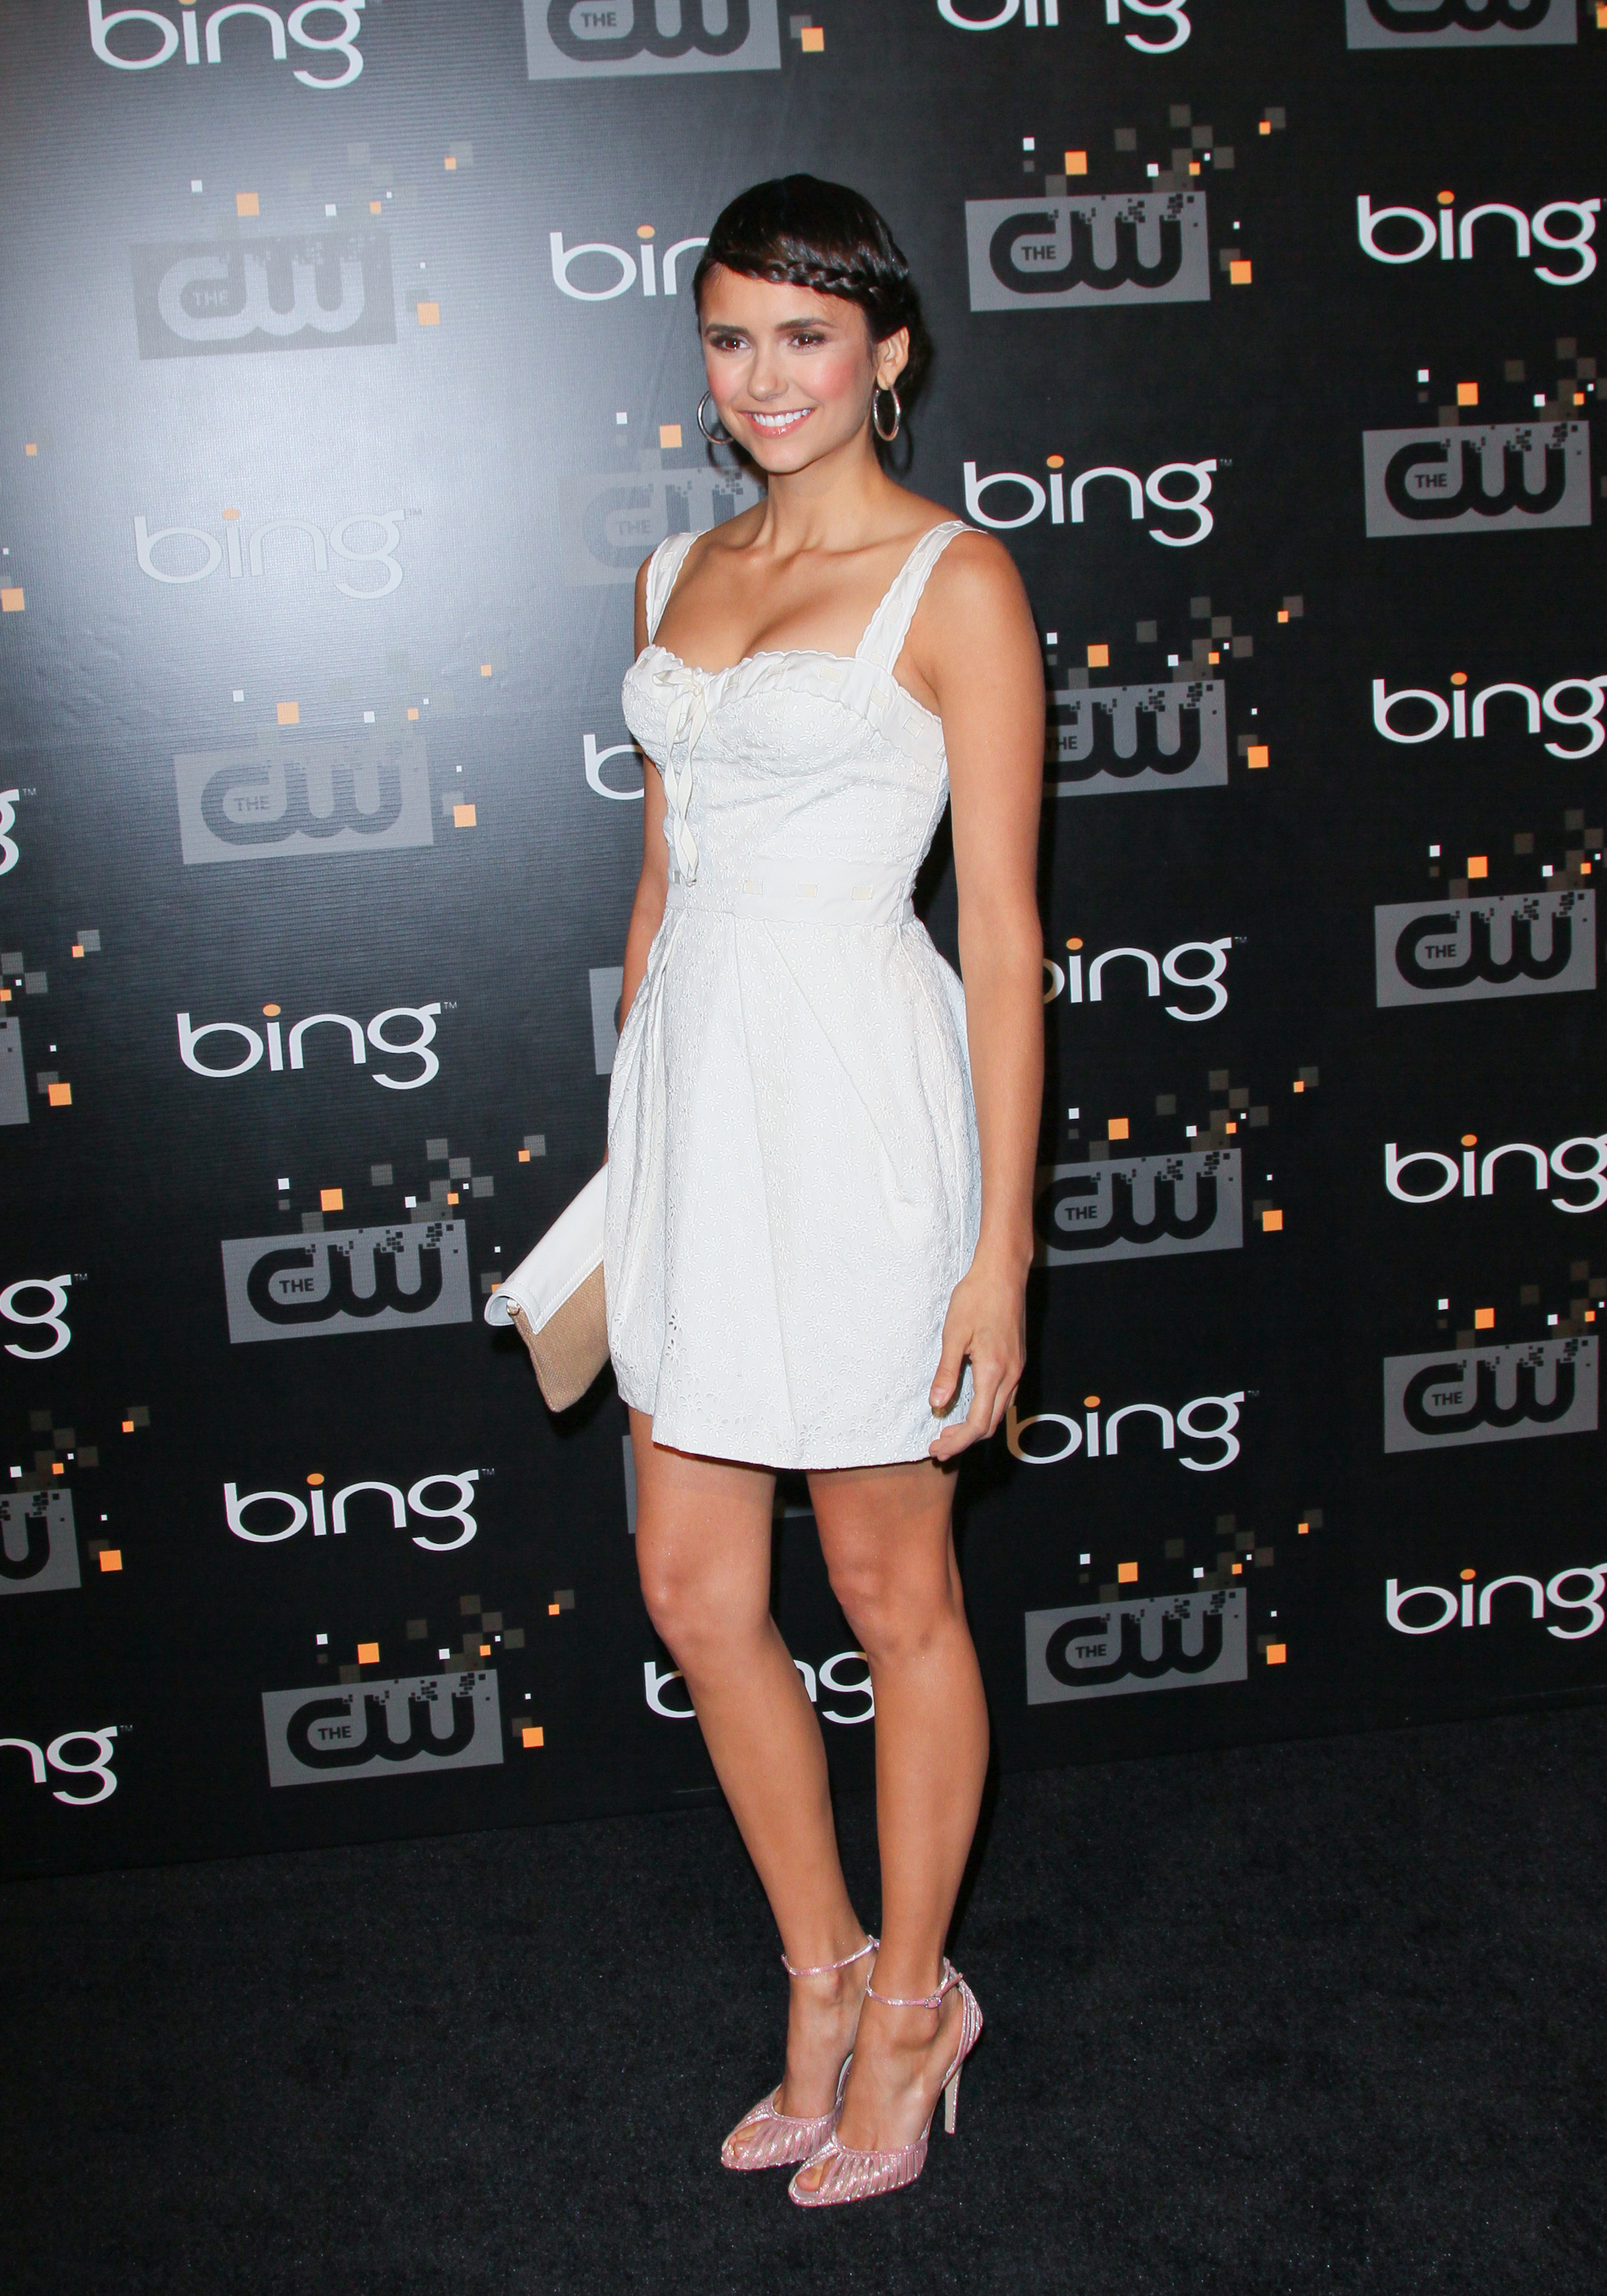 She kept her LWD sweet by adding light pink heels and a front braid to the mix at the Vampire Diaries premiere party in 2011.